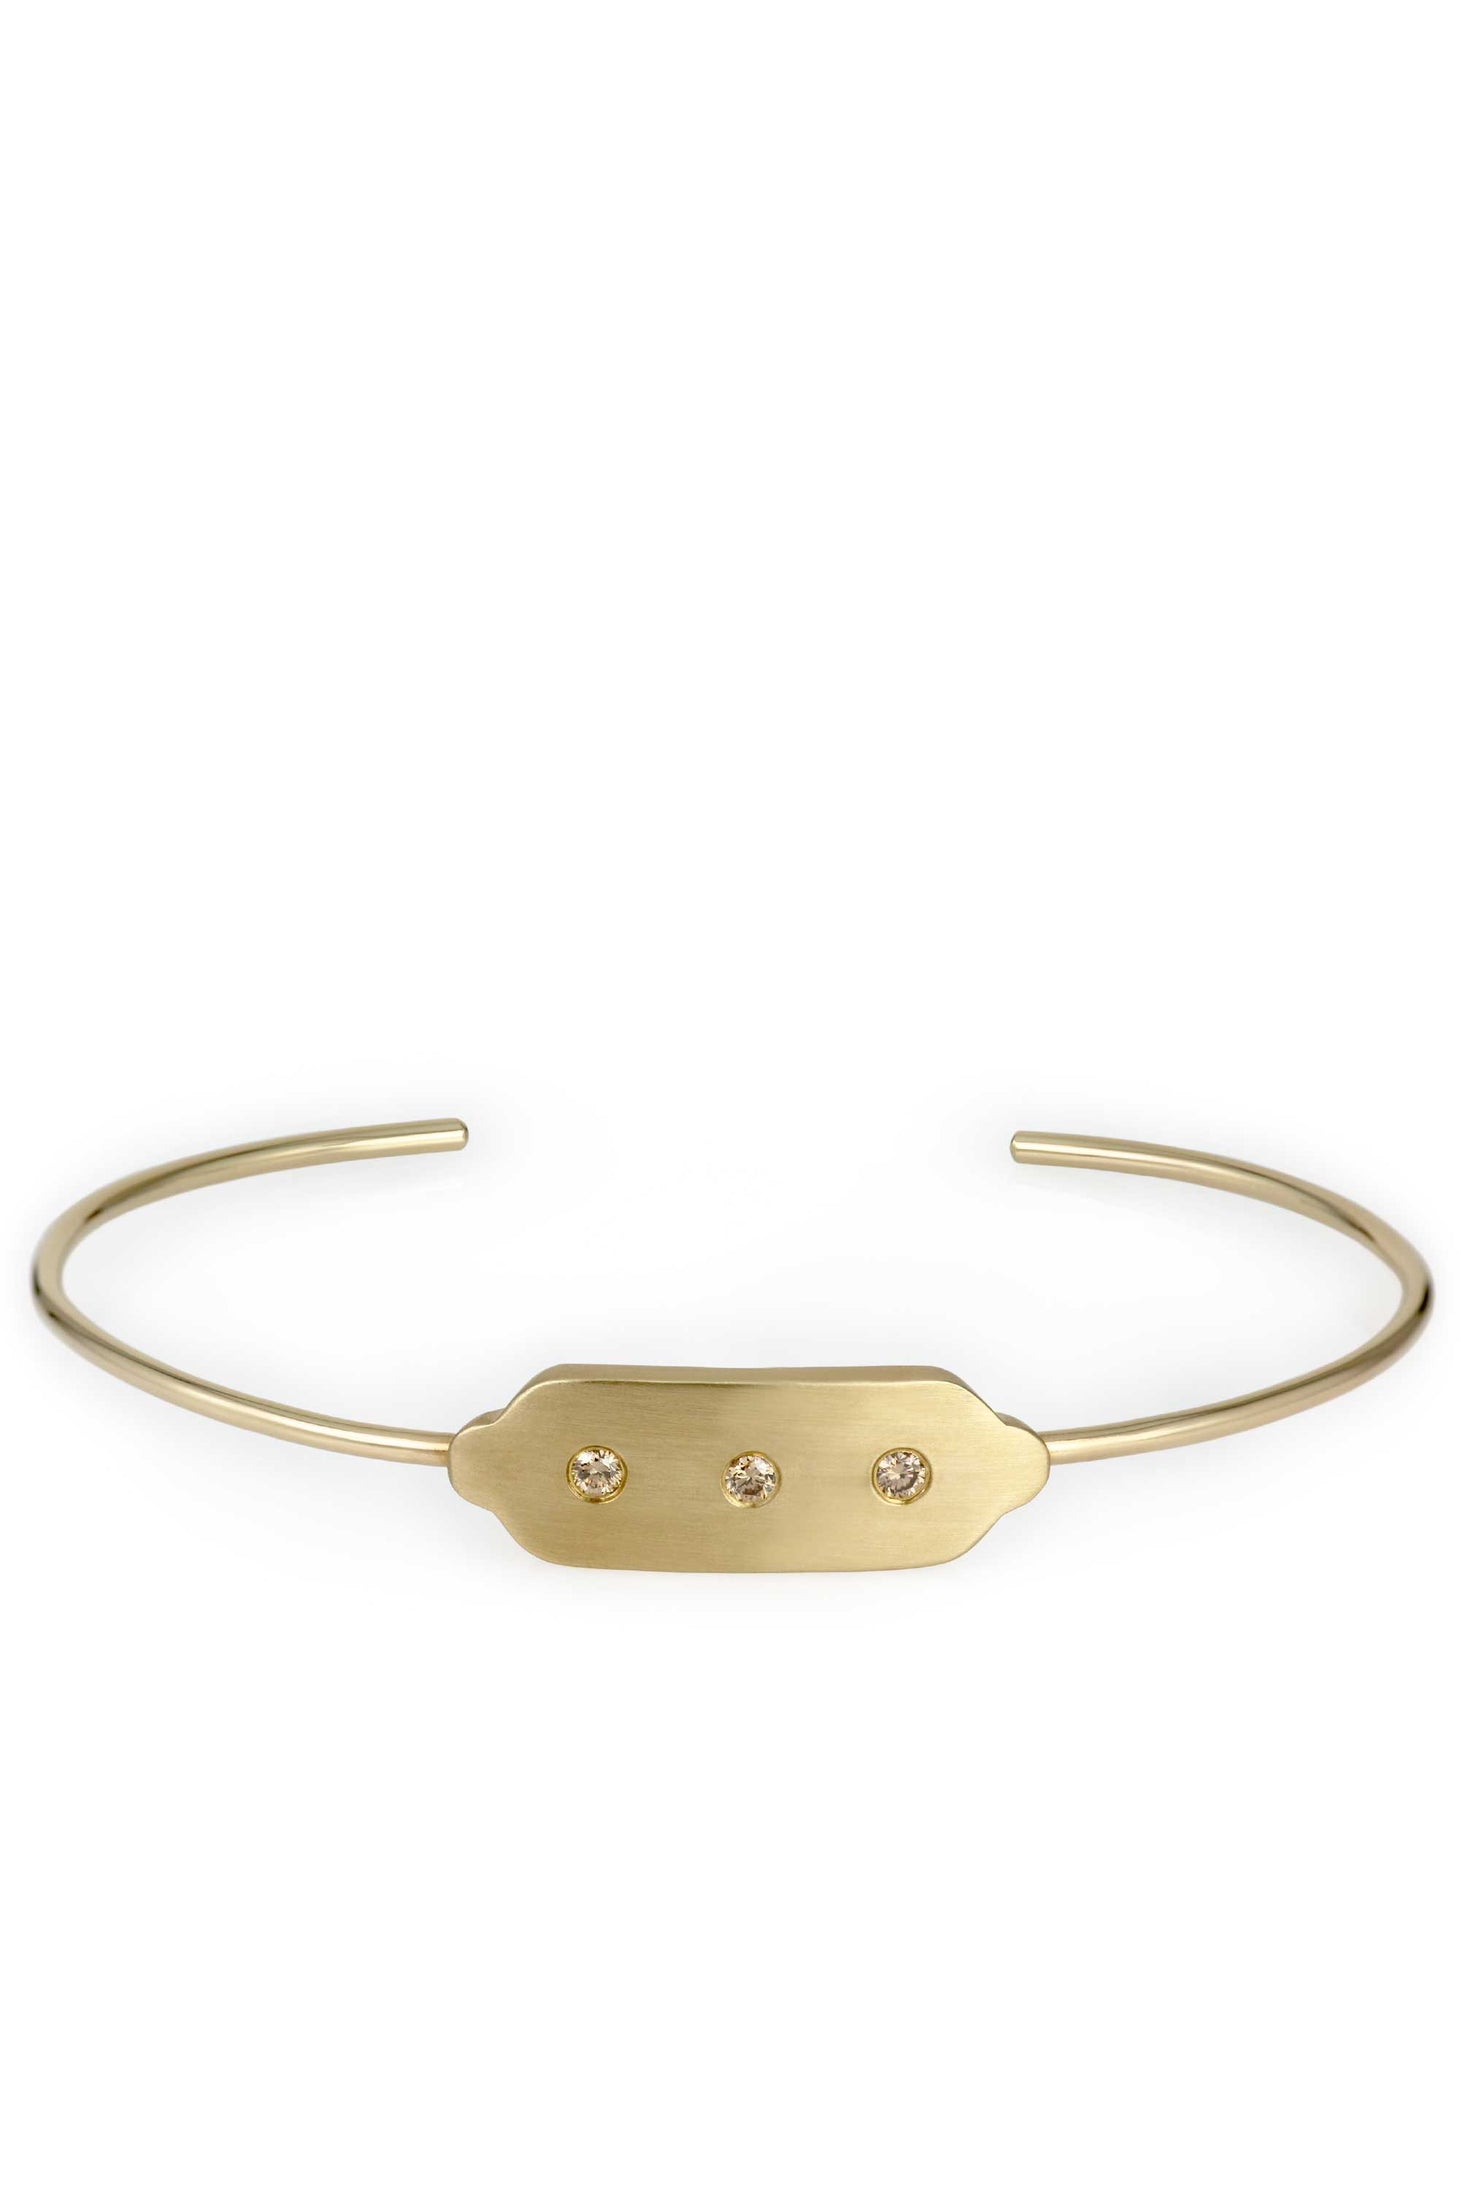 ID Bracelet in solid 14k recycled yellow gold with champagne diamonds